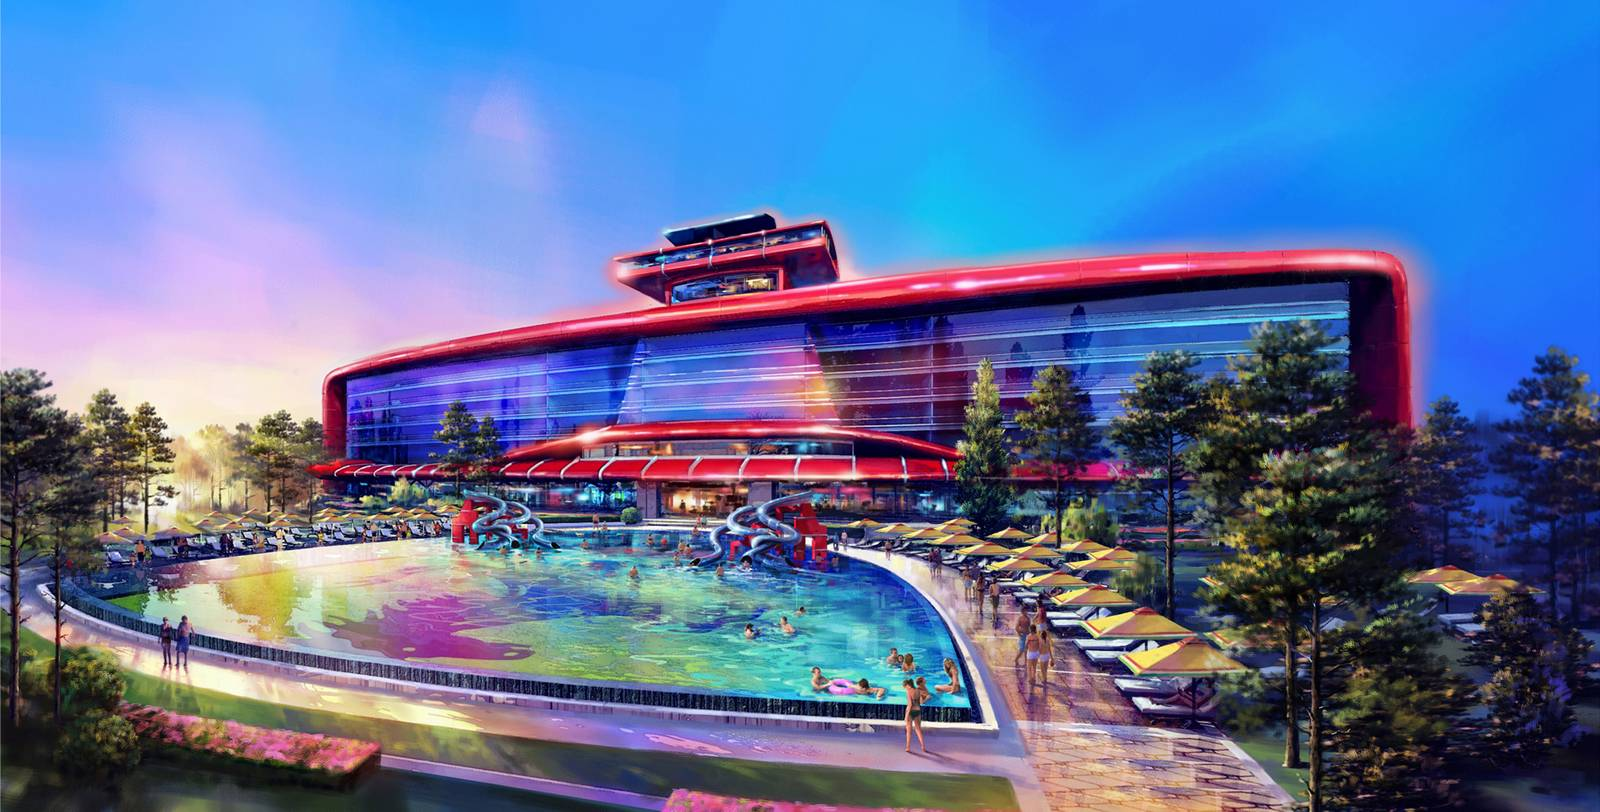 Port Aventura Acces Ferrari Land To Be Built In Barcelona Spain In 2016